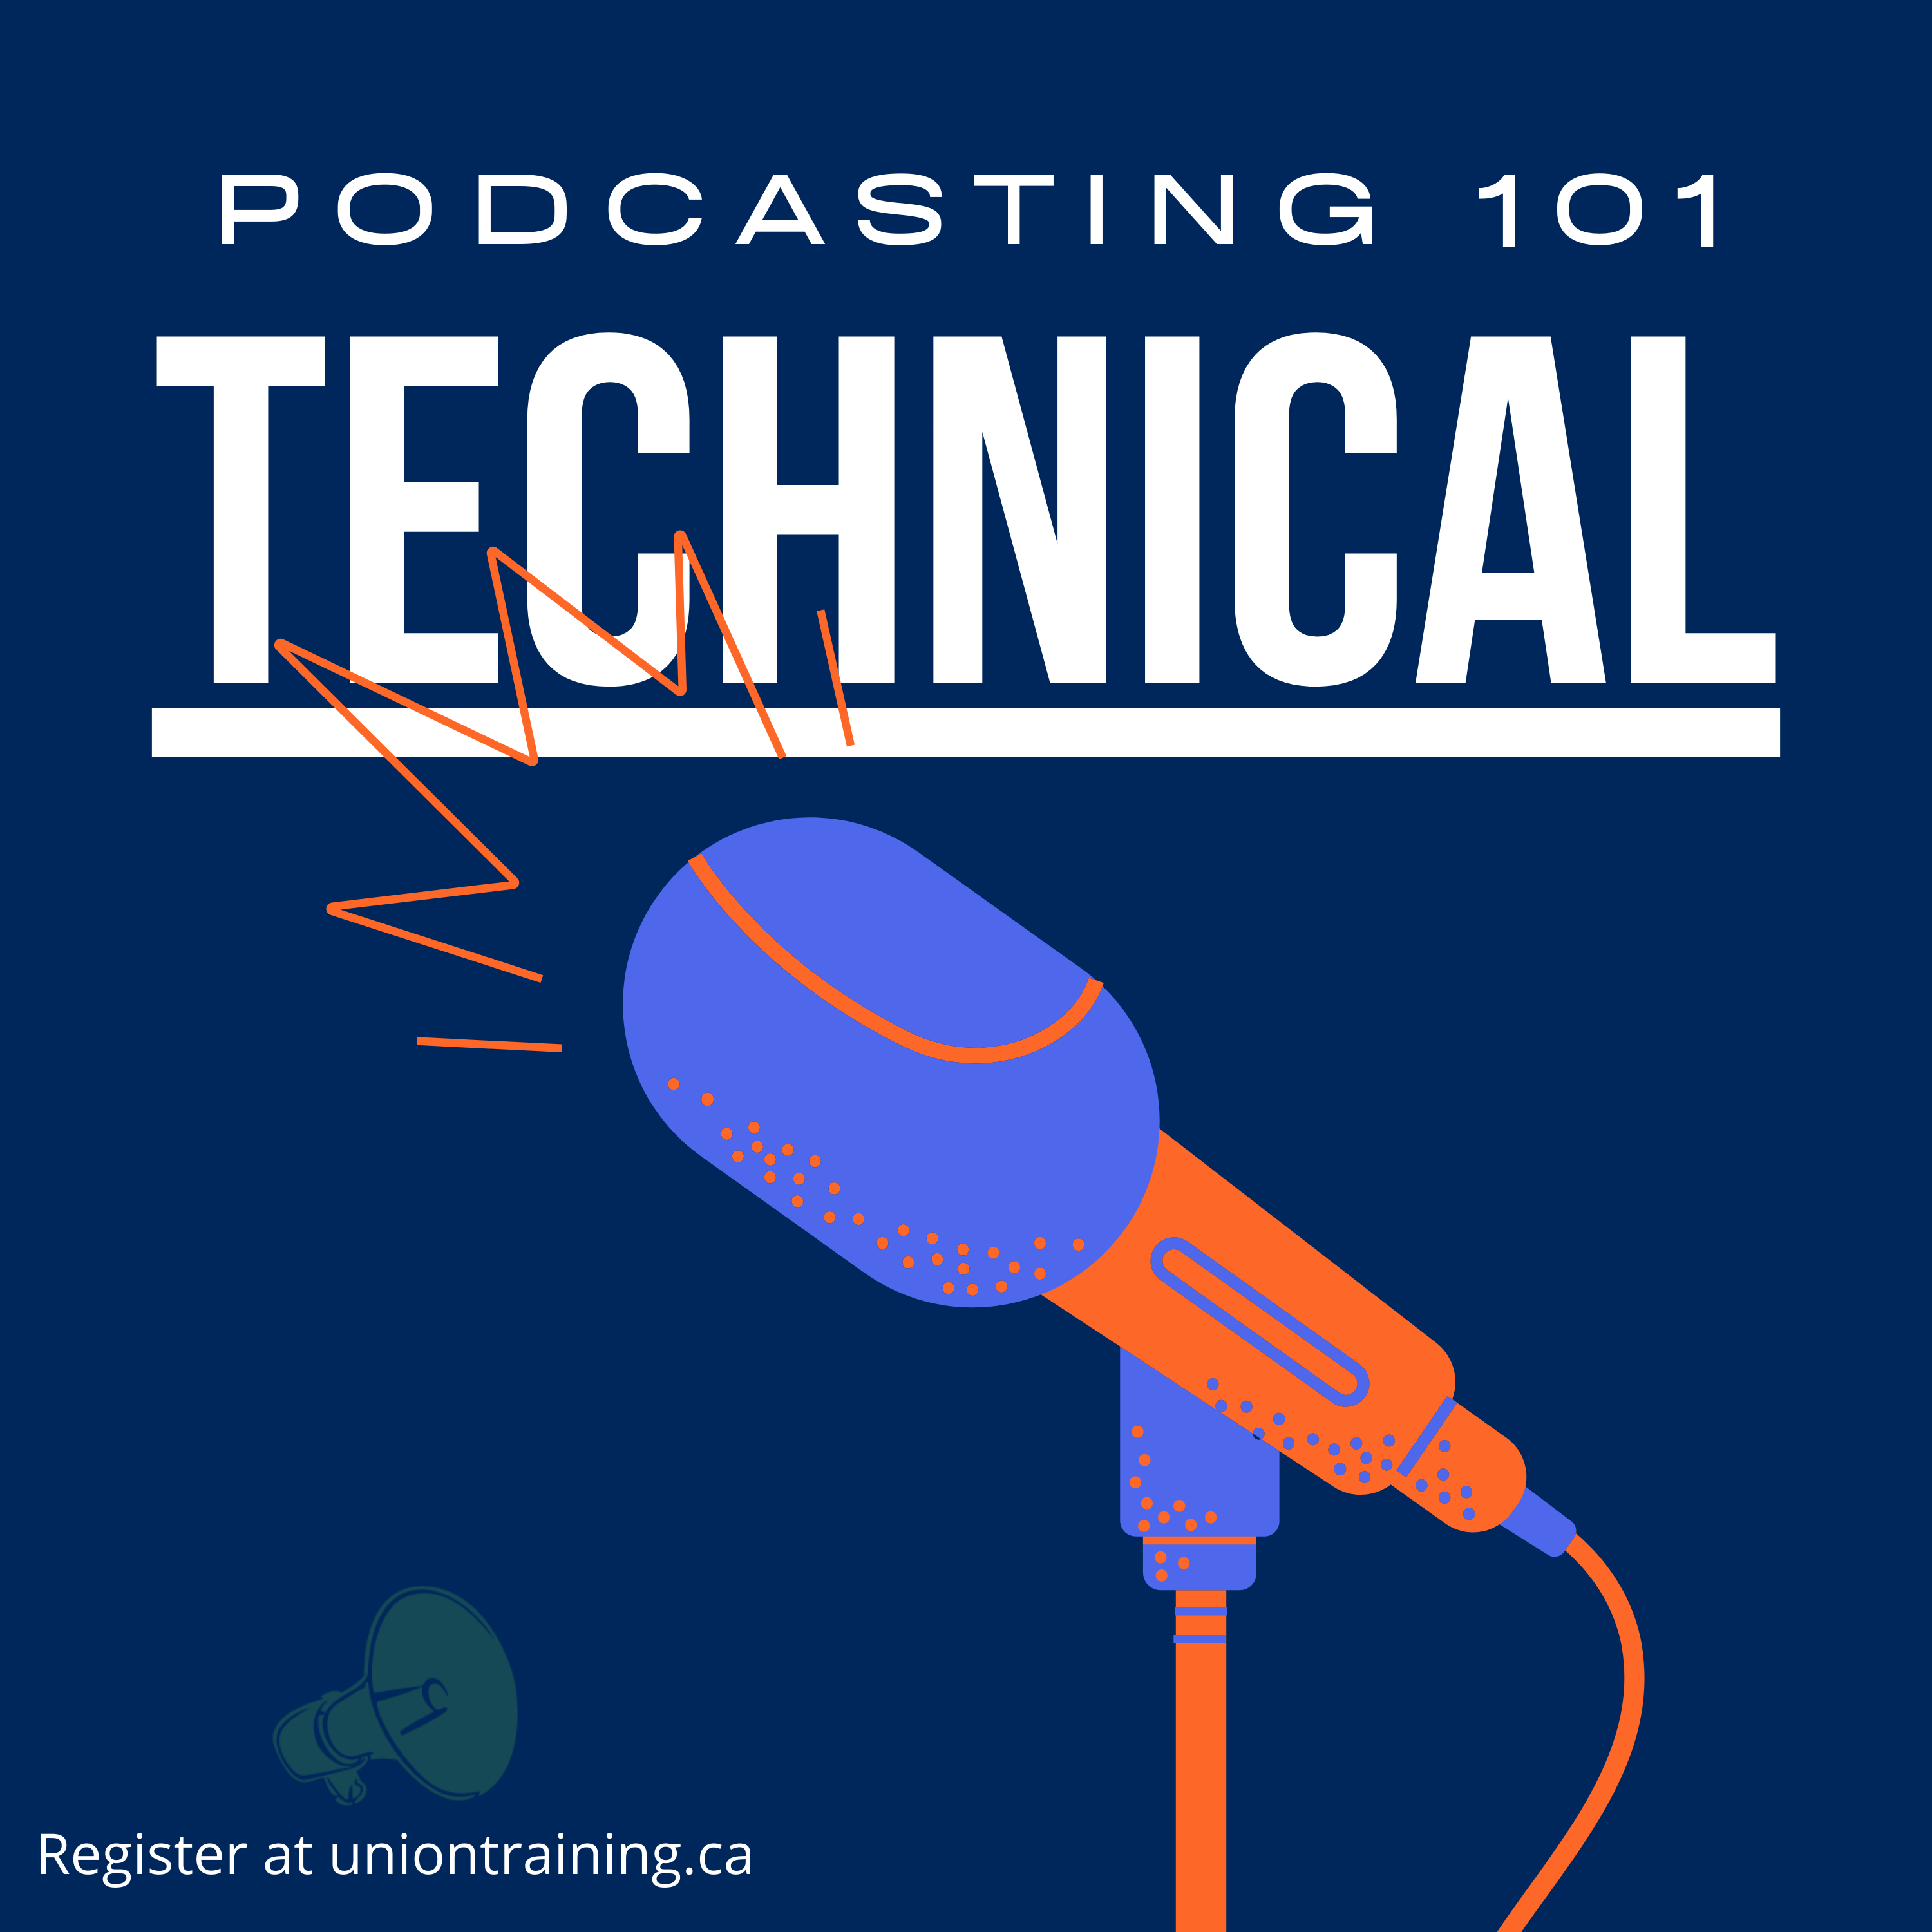 podcasting 101 cover image